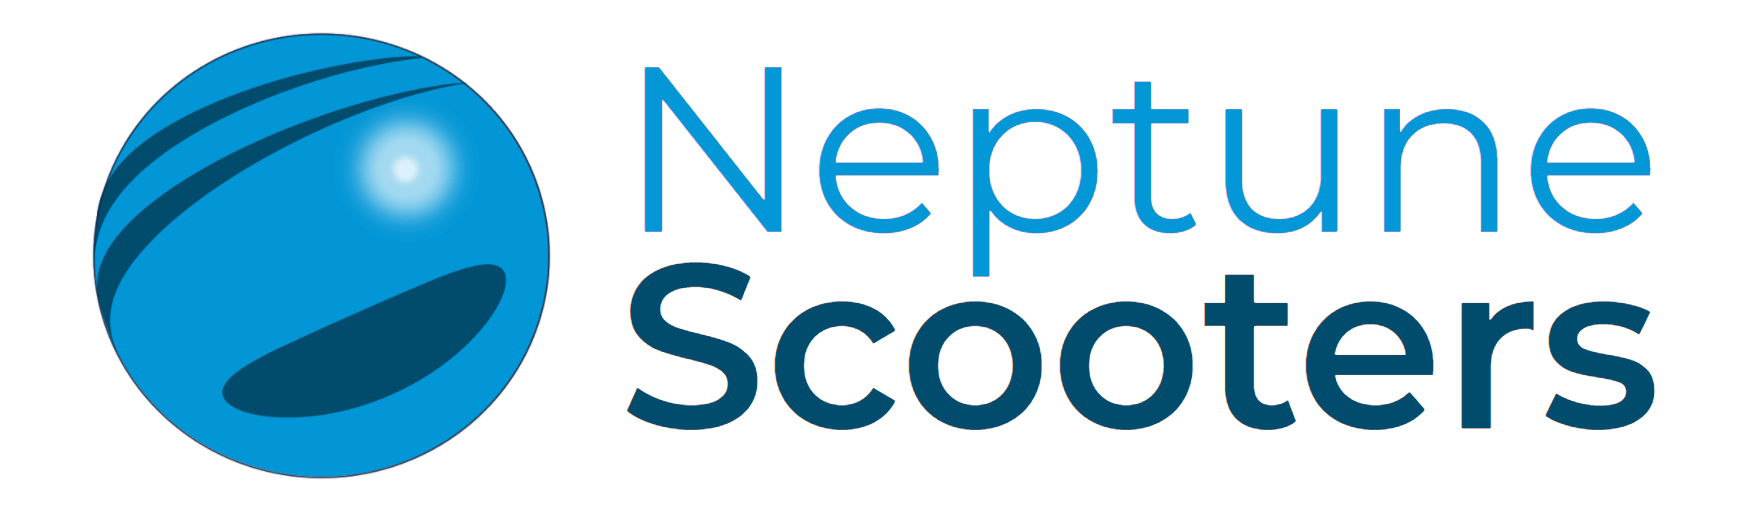 Neptune Scooters, Inc.